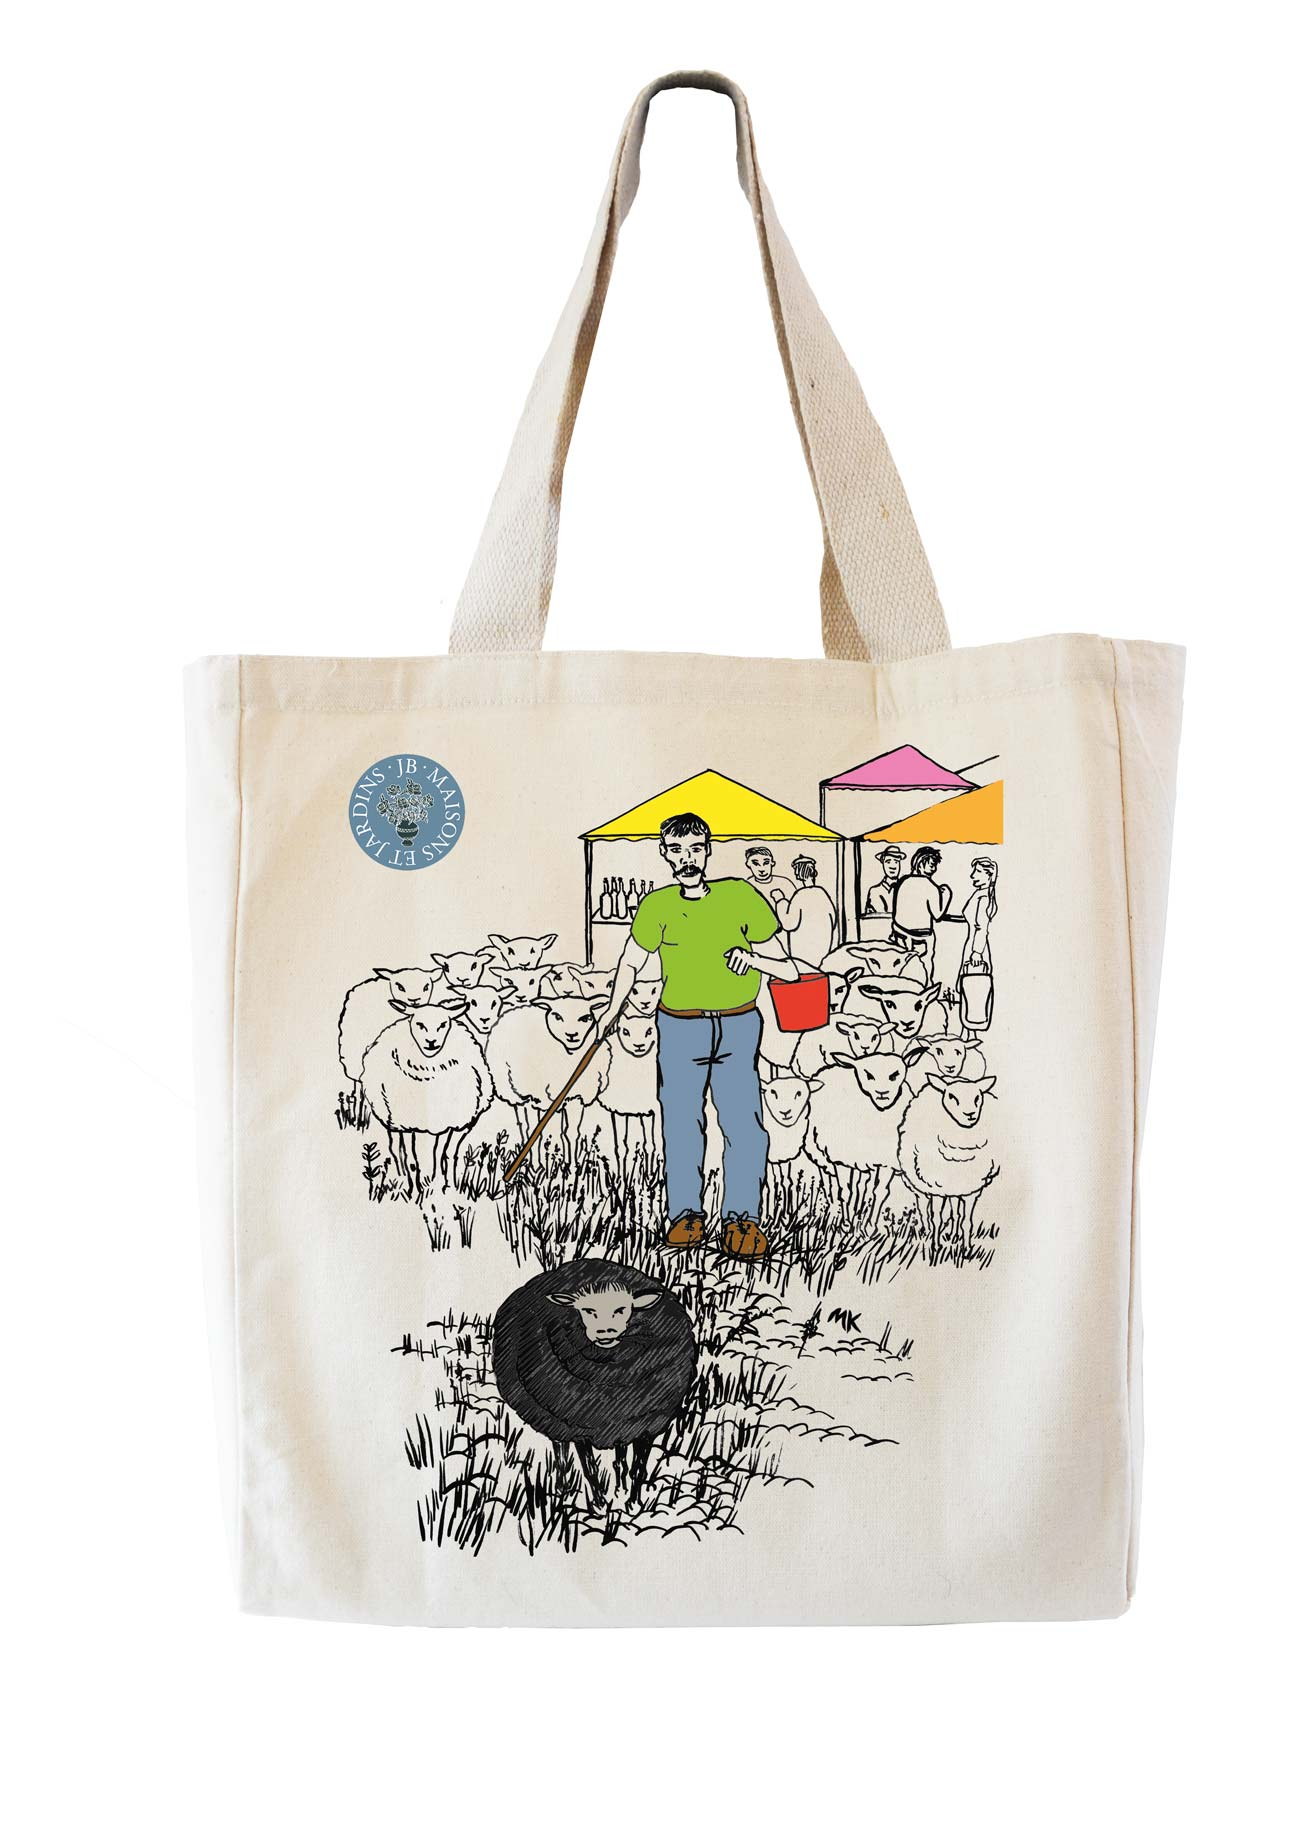 pen and ink illustration of sheep for for a tote bag